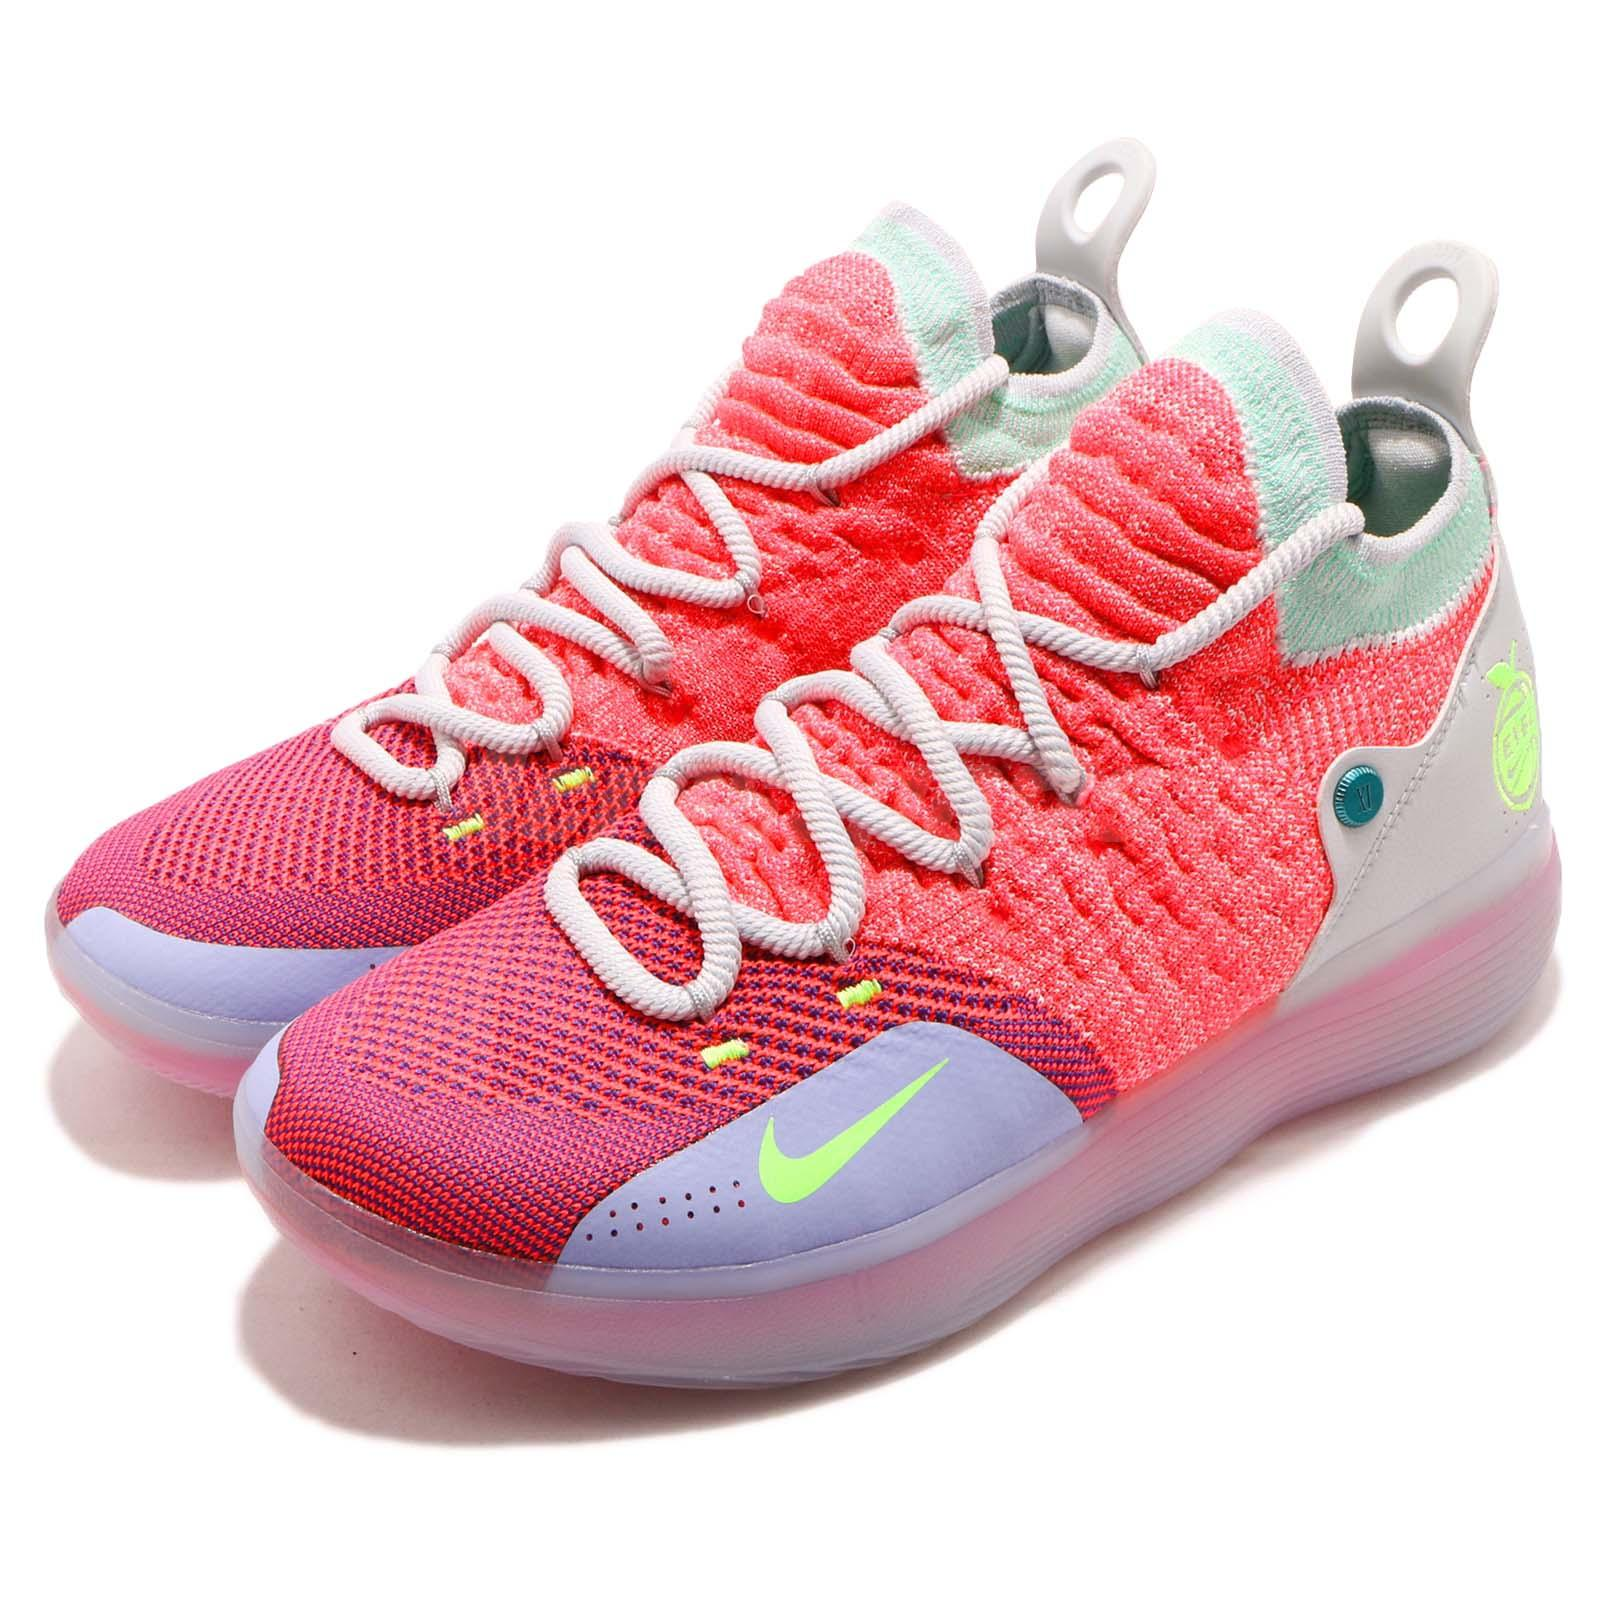 online store 542e3 1305c Details about Nike Zoom KD 11 EP XI EYBL Peach Jam Hot Punch Kevin Durant  Men Shoes AO2605-600